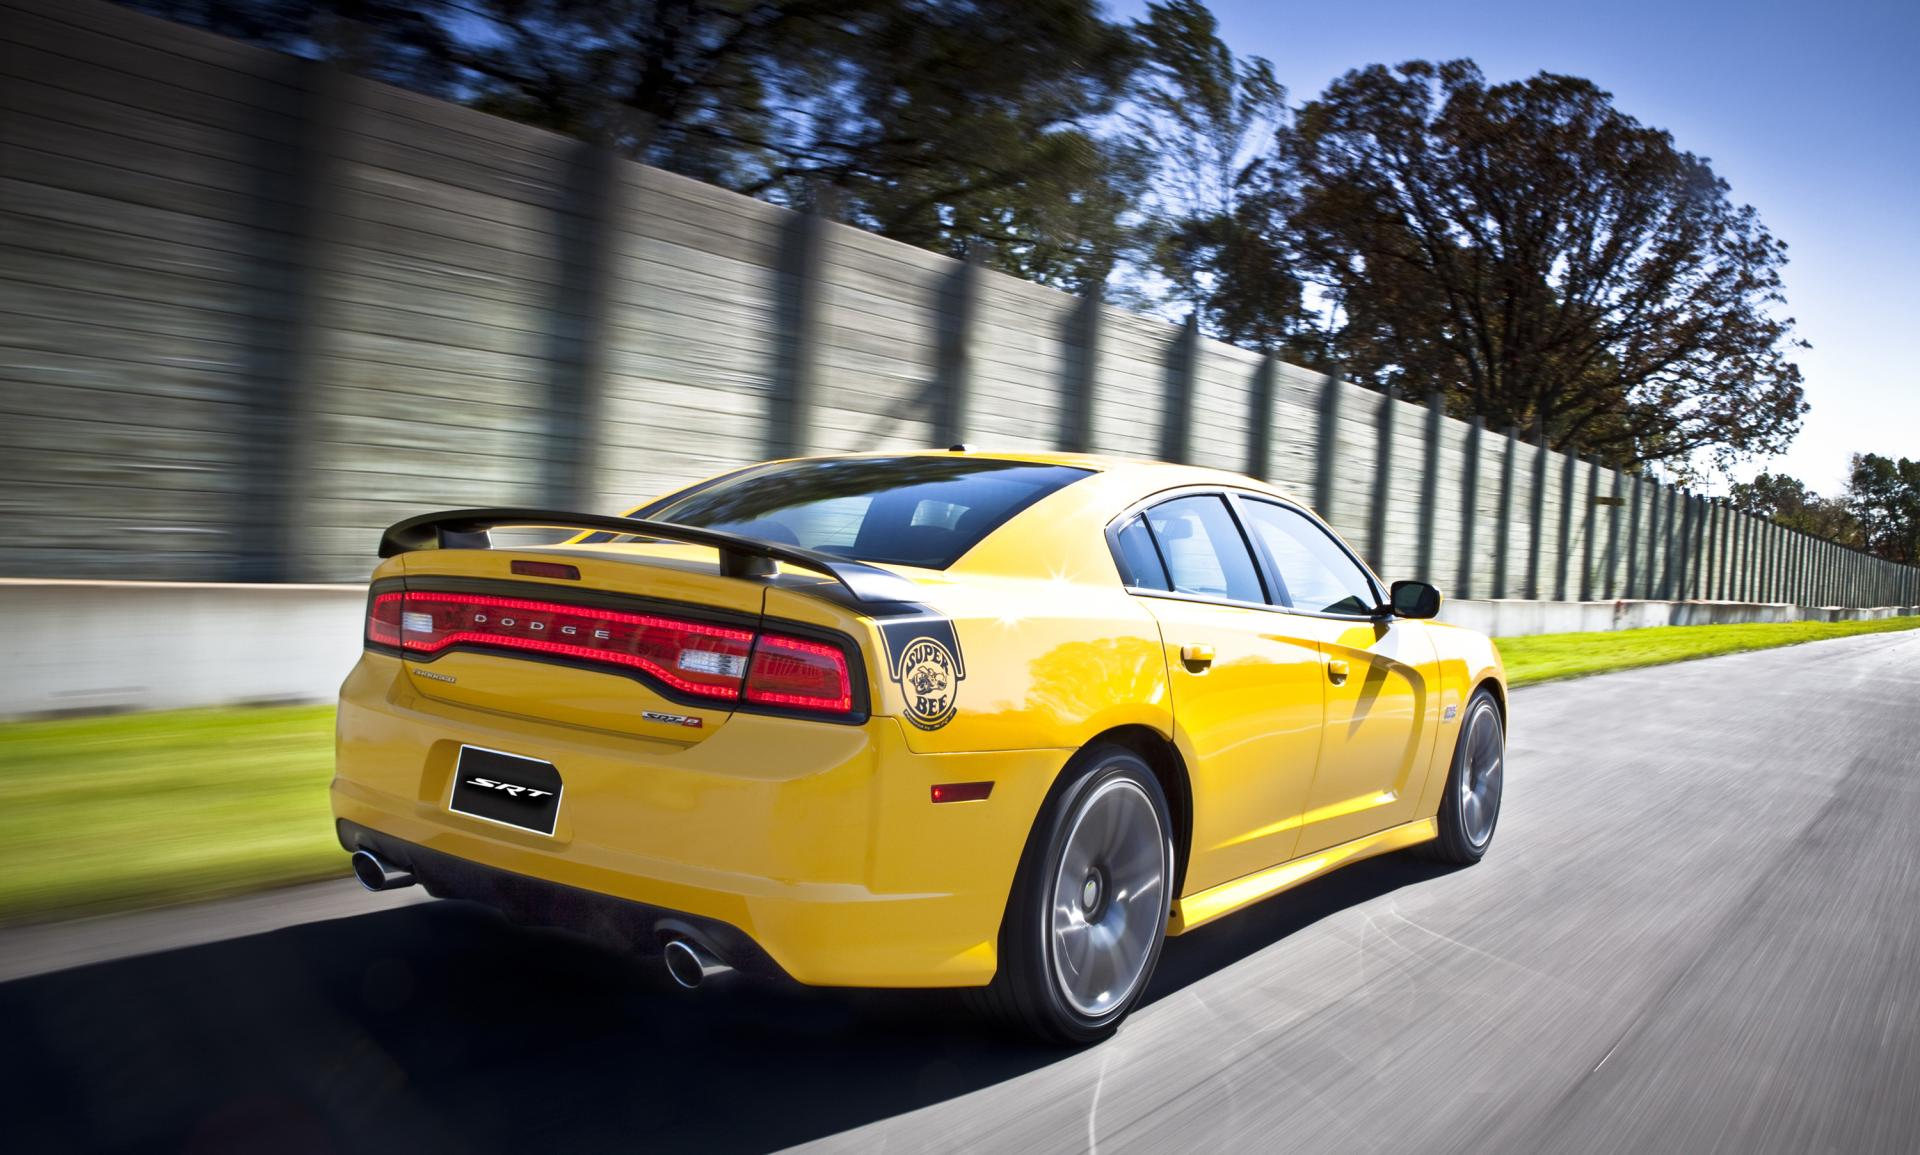 2012 dodge charger srt8 super bee. Black Bedroom Furniture Sets. Home Design Ideas